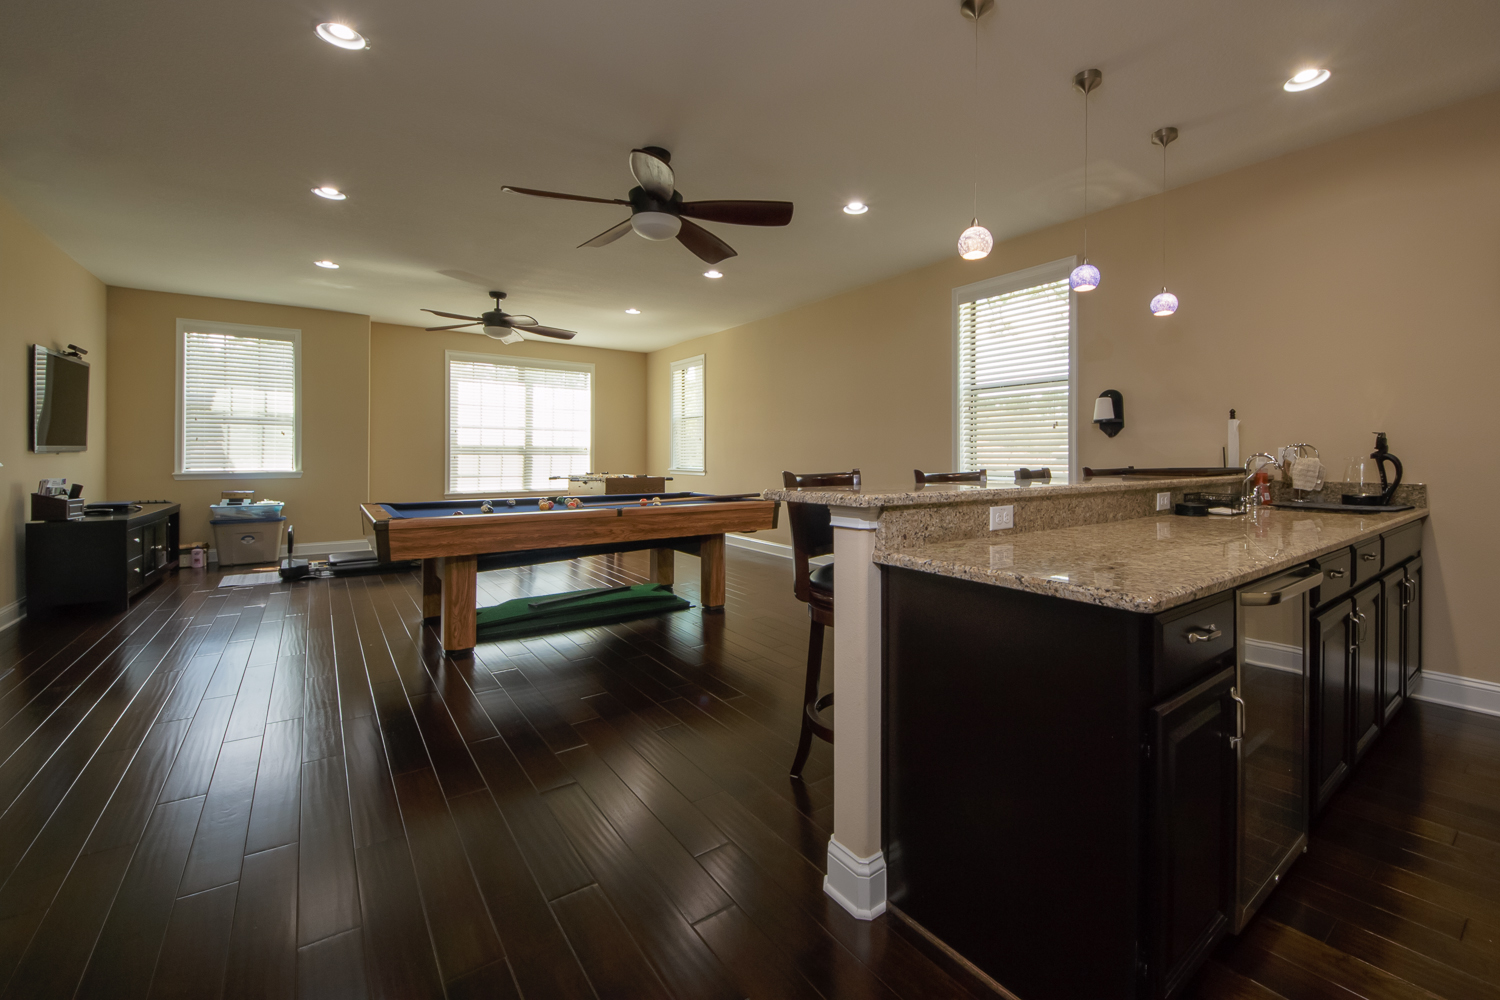 Spanish Hickory Blackhills Wood Flooring in Rec Room with pool table